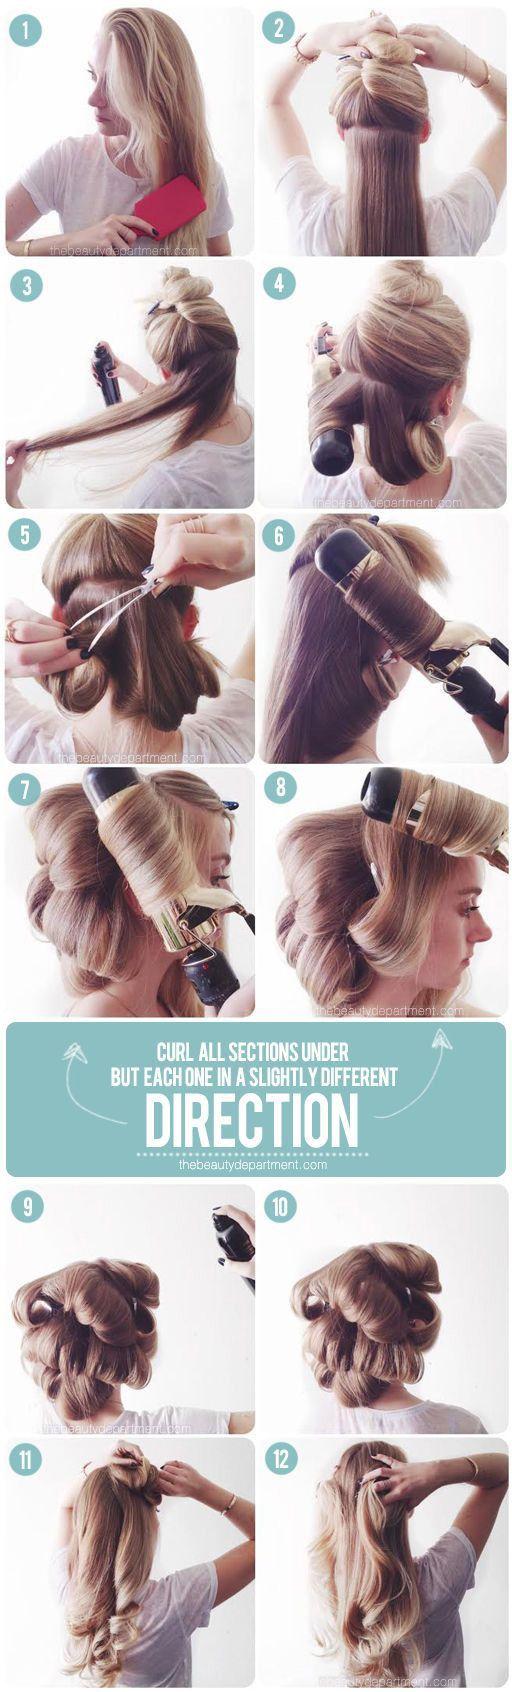 *18 Curling Iron and Wand Tricks And Tips For Easy Curls   Gurl.com